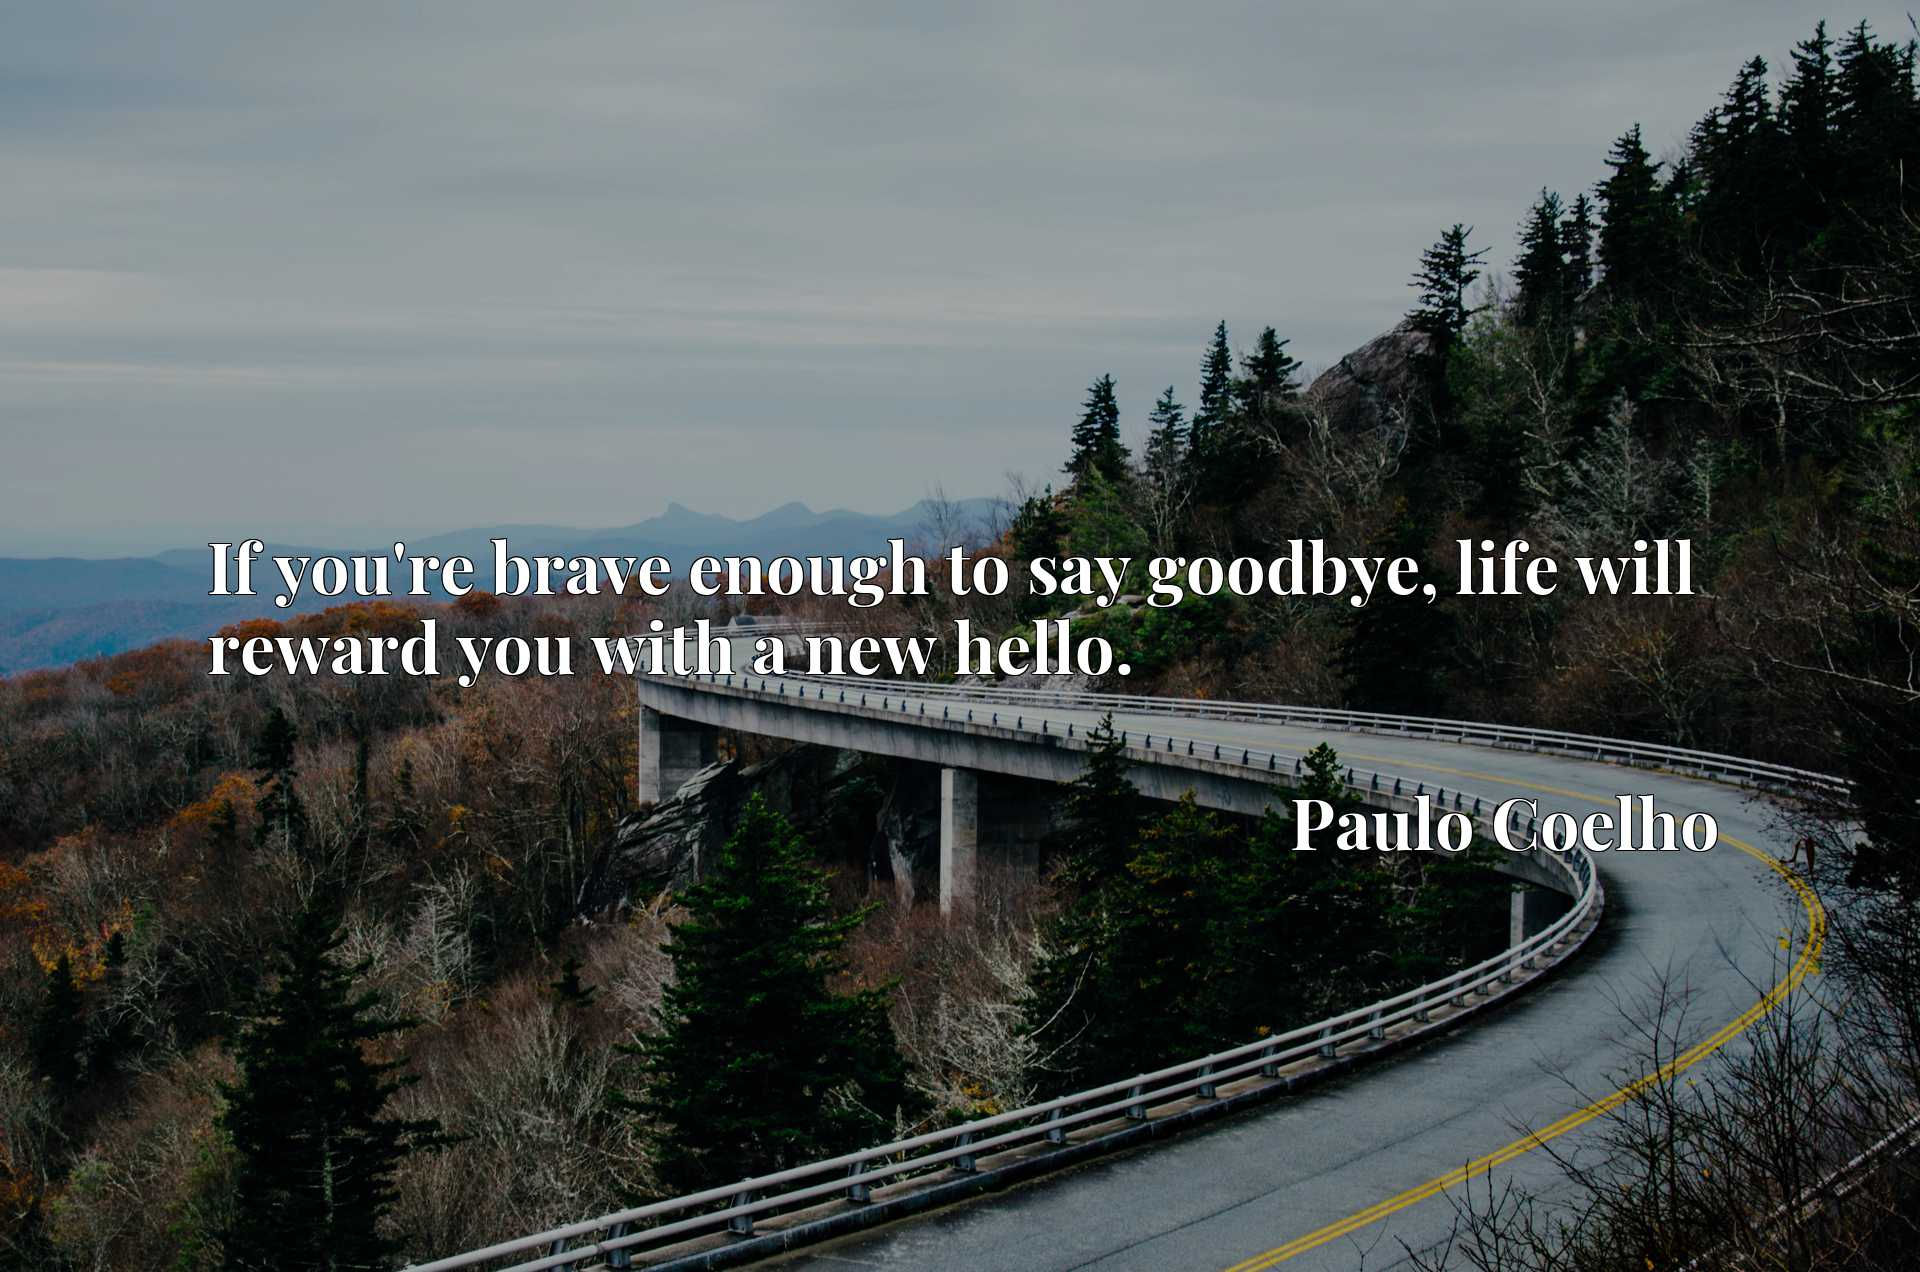 If you're brave enough to say goodbye, life will reward you with a new hello.